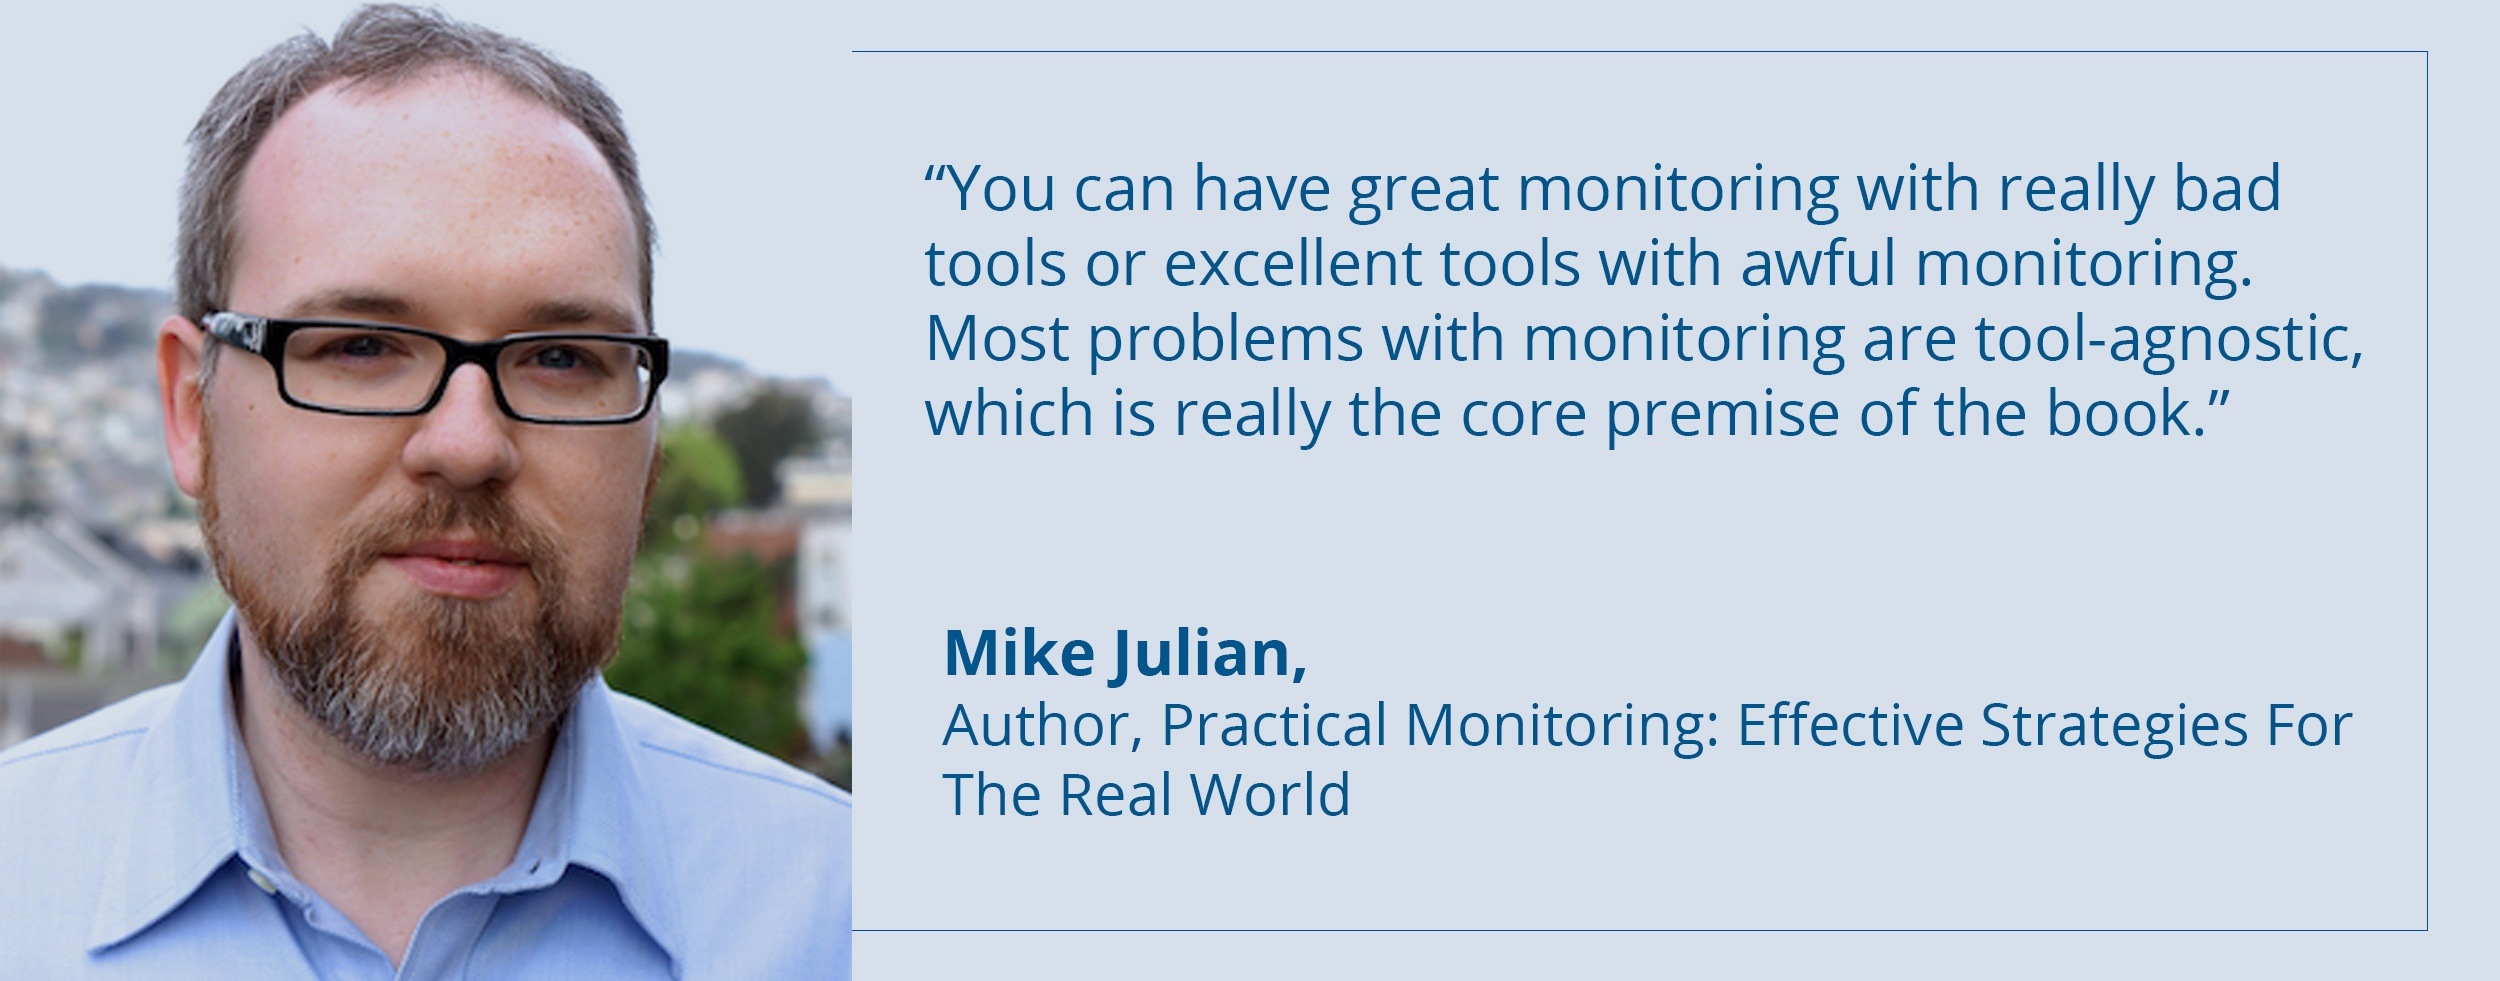 Mike Julian On Practical Monitoring